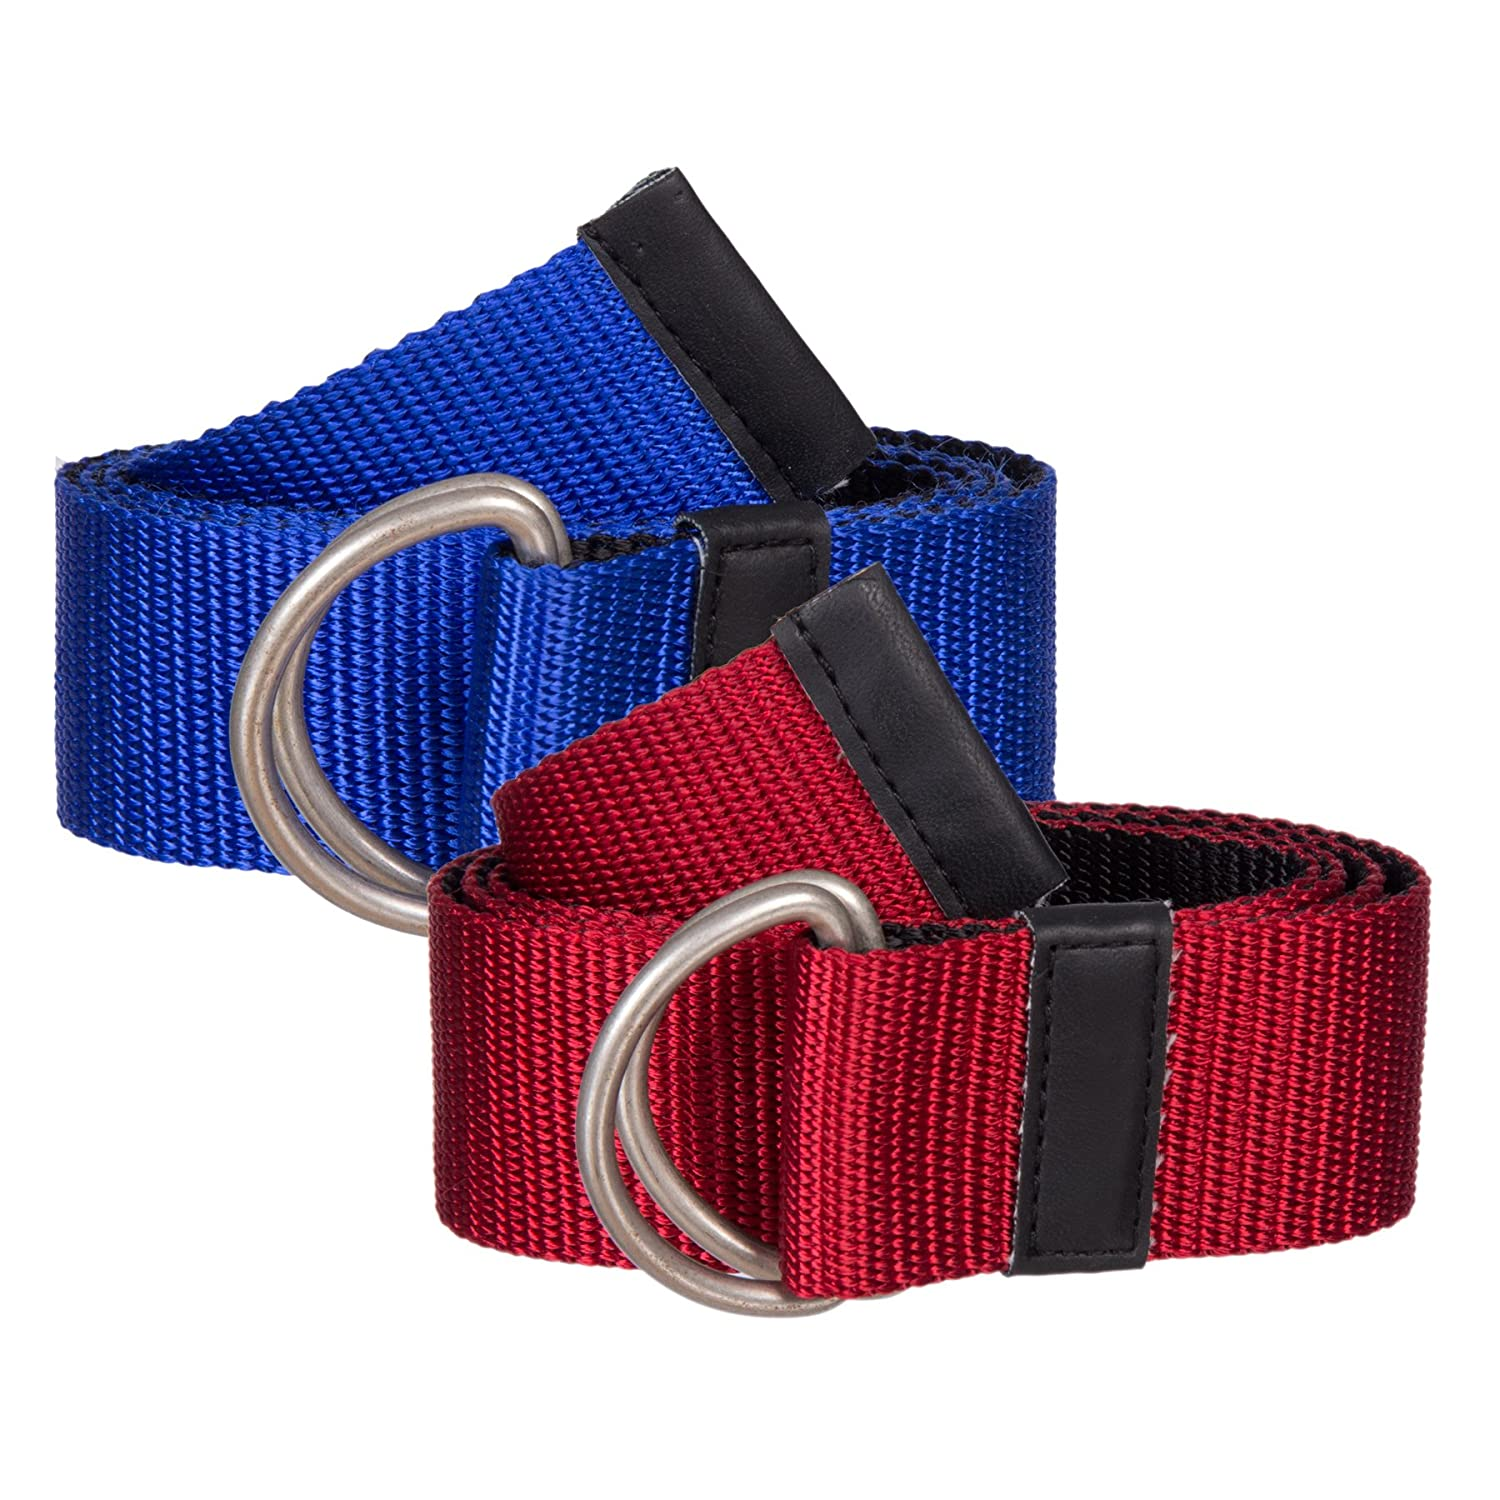 Sunny Belt Girls' 1 1/2 Wide 2 Pack Web Belts with Metal Double-Ring Buckles (One size up to 34) KDC_SUN_8435_2PK_R